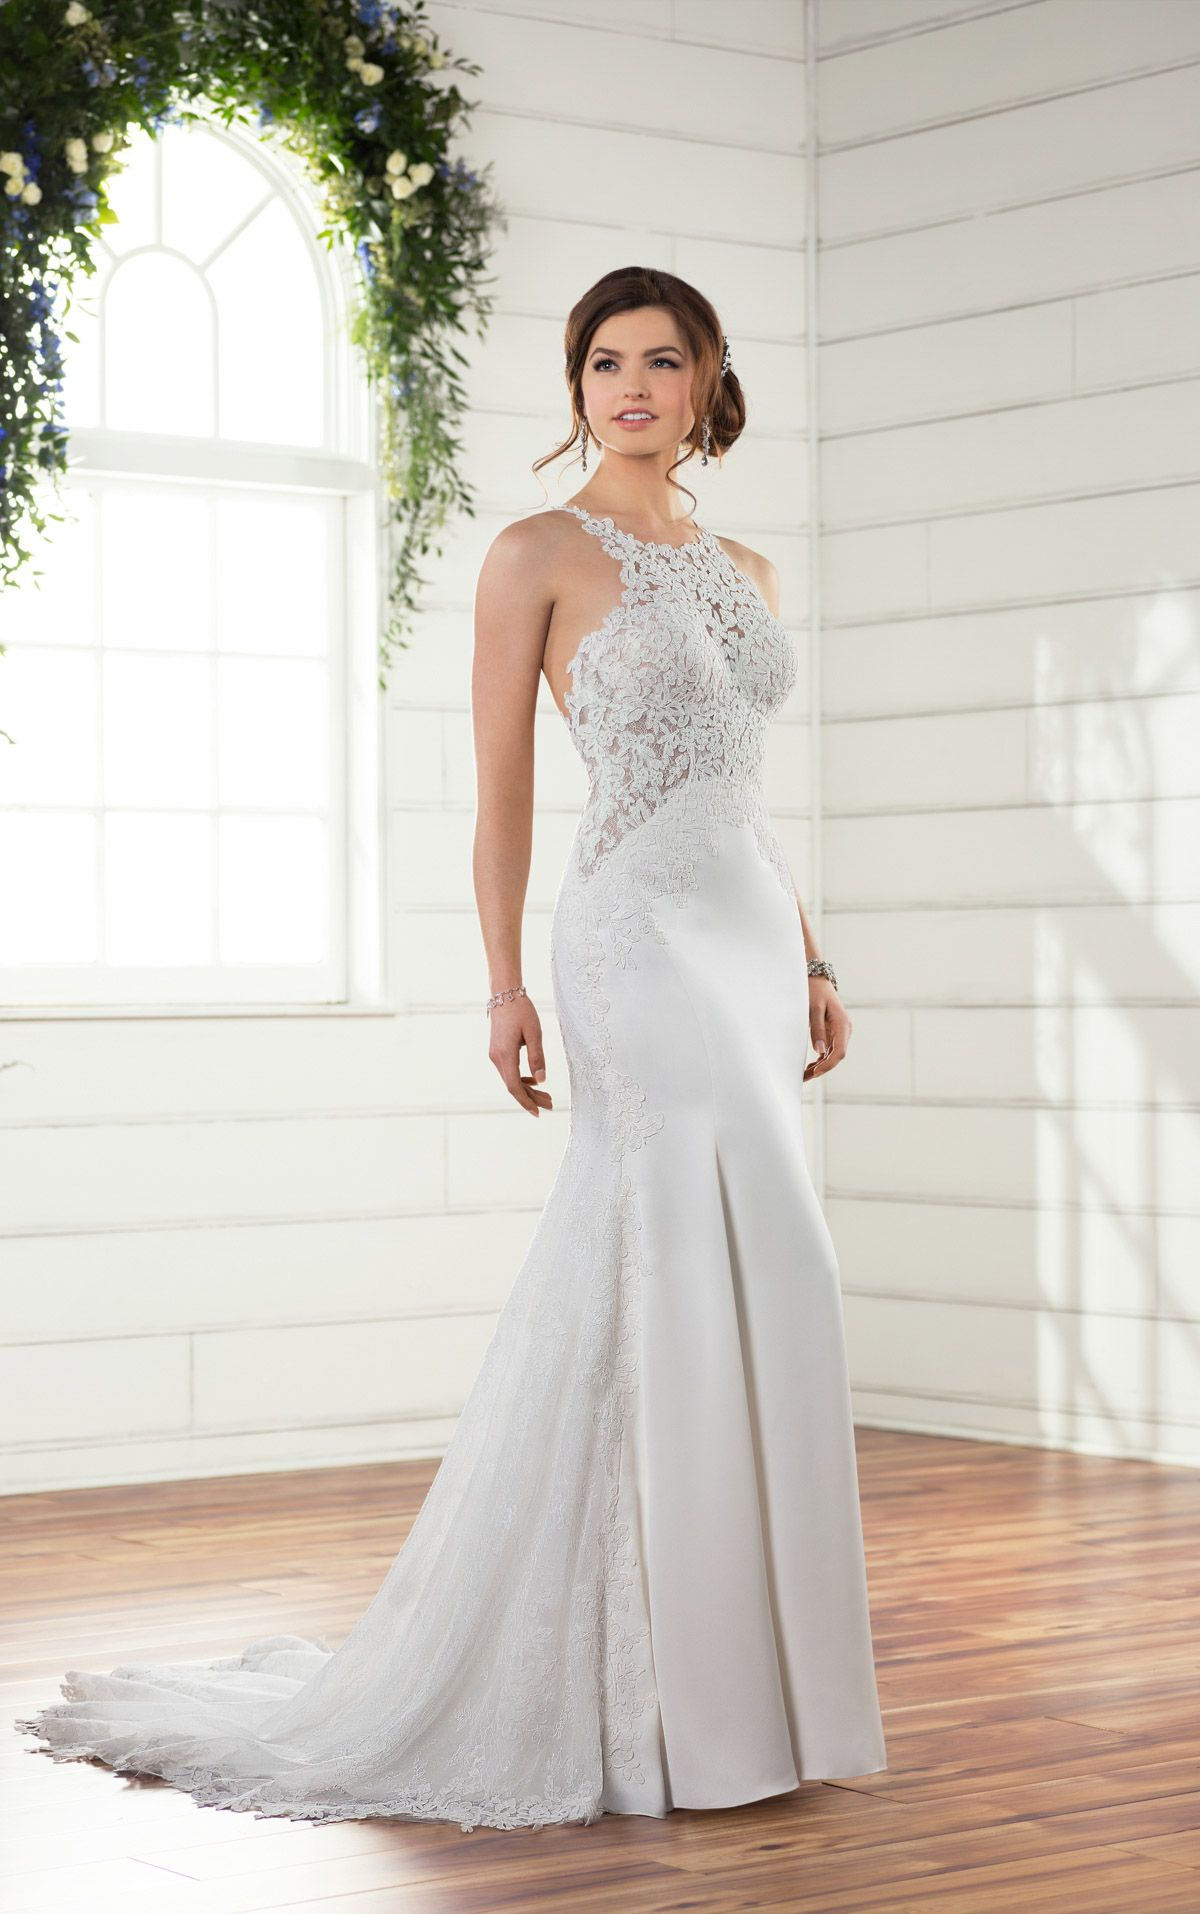 Essense of australia gown at the bridal cottage rusticwedding